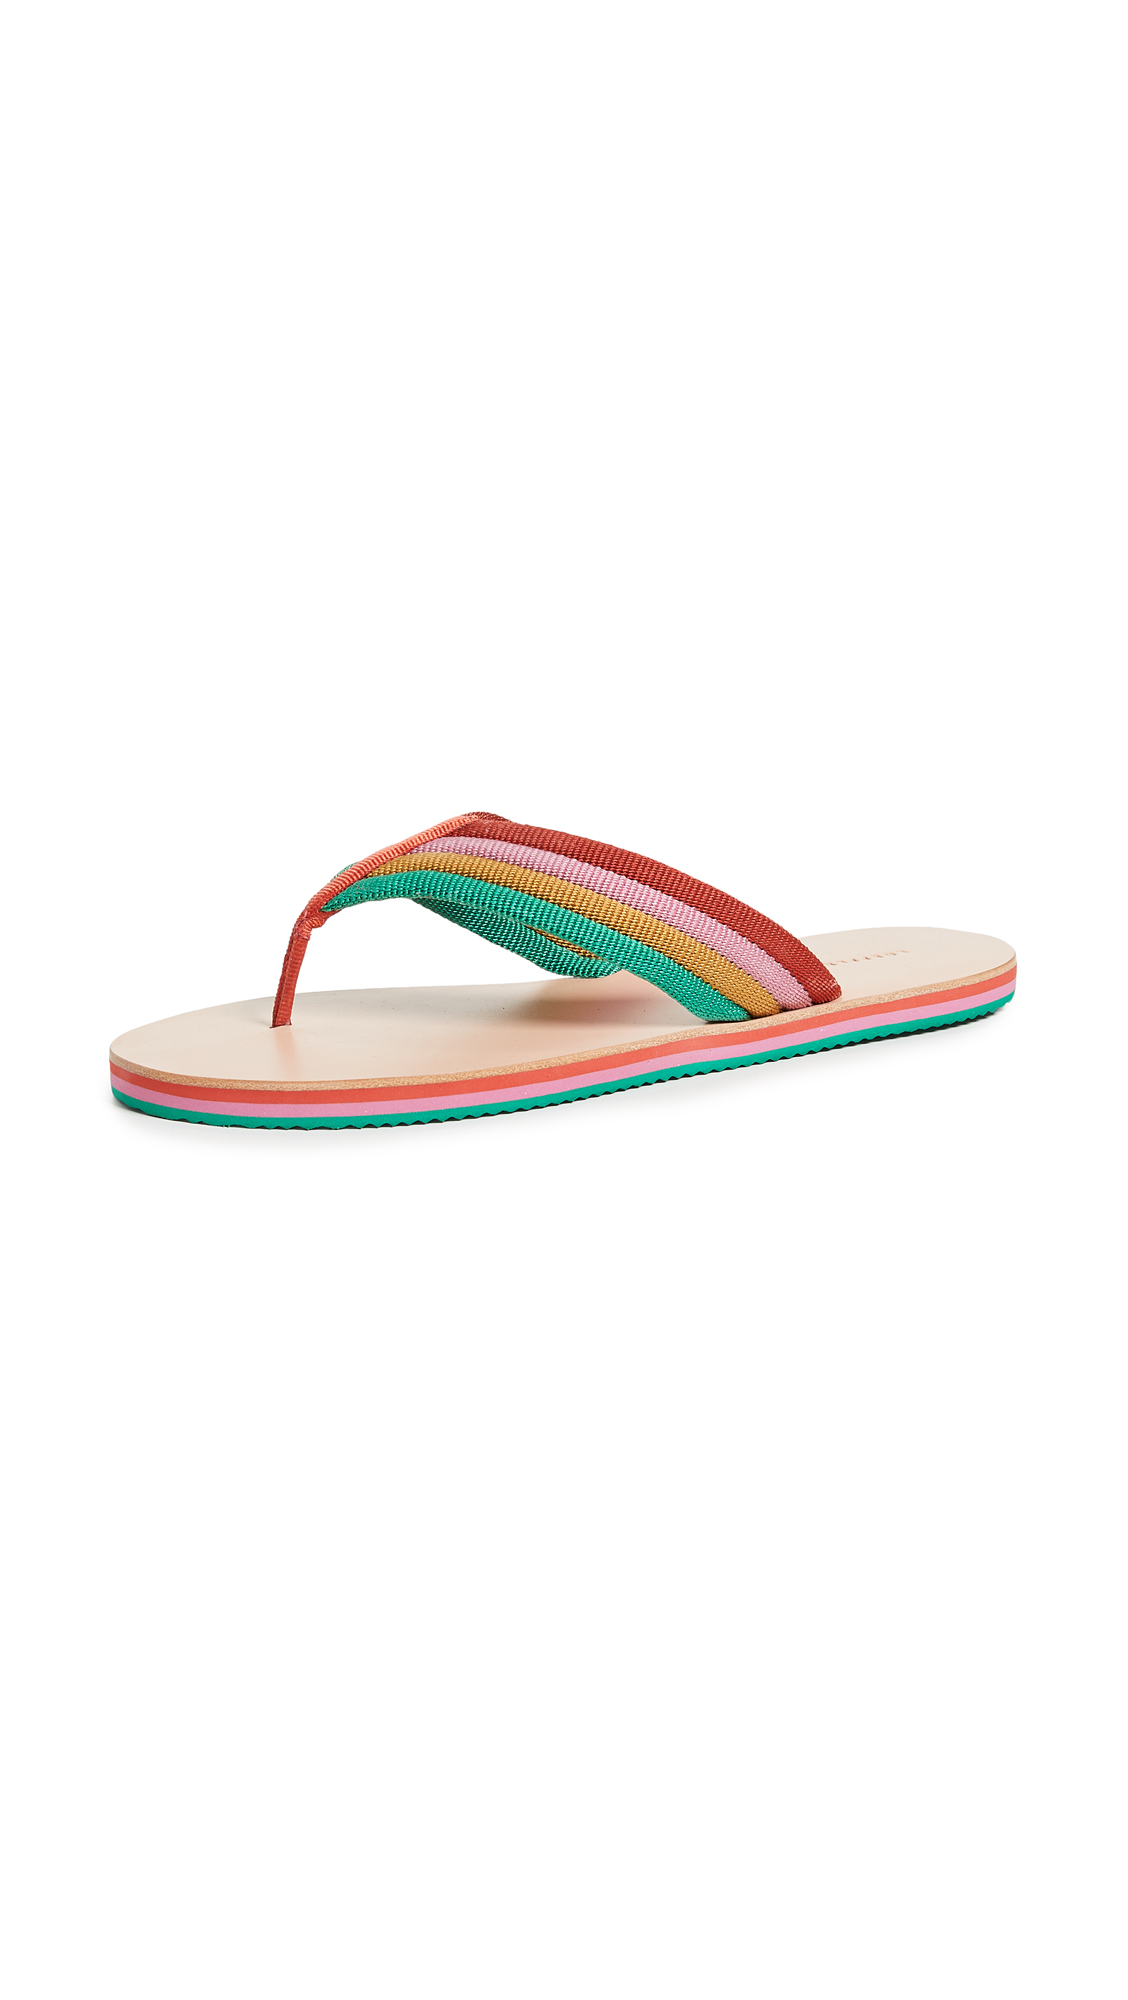 Photo of Loeffler Randall Jo Sandals - buy Loeffler Randall shoes